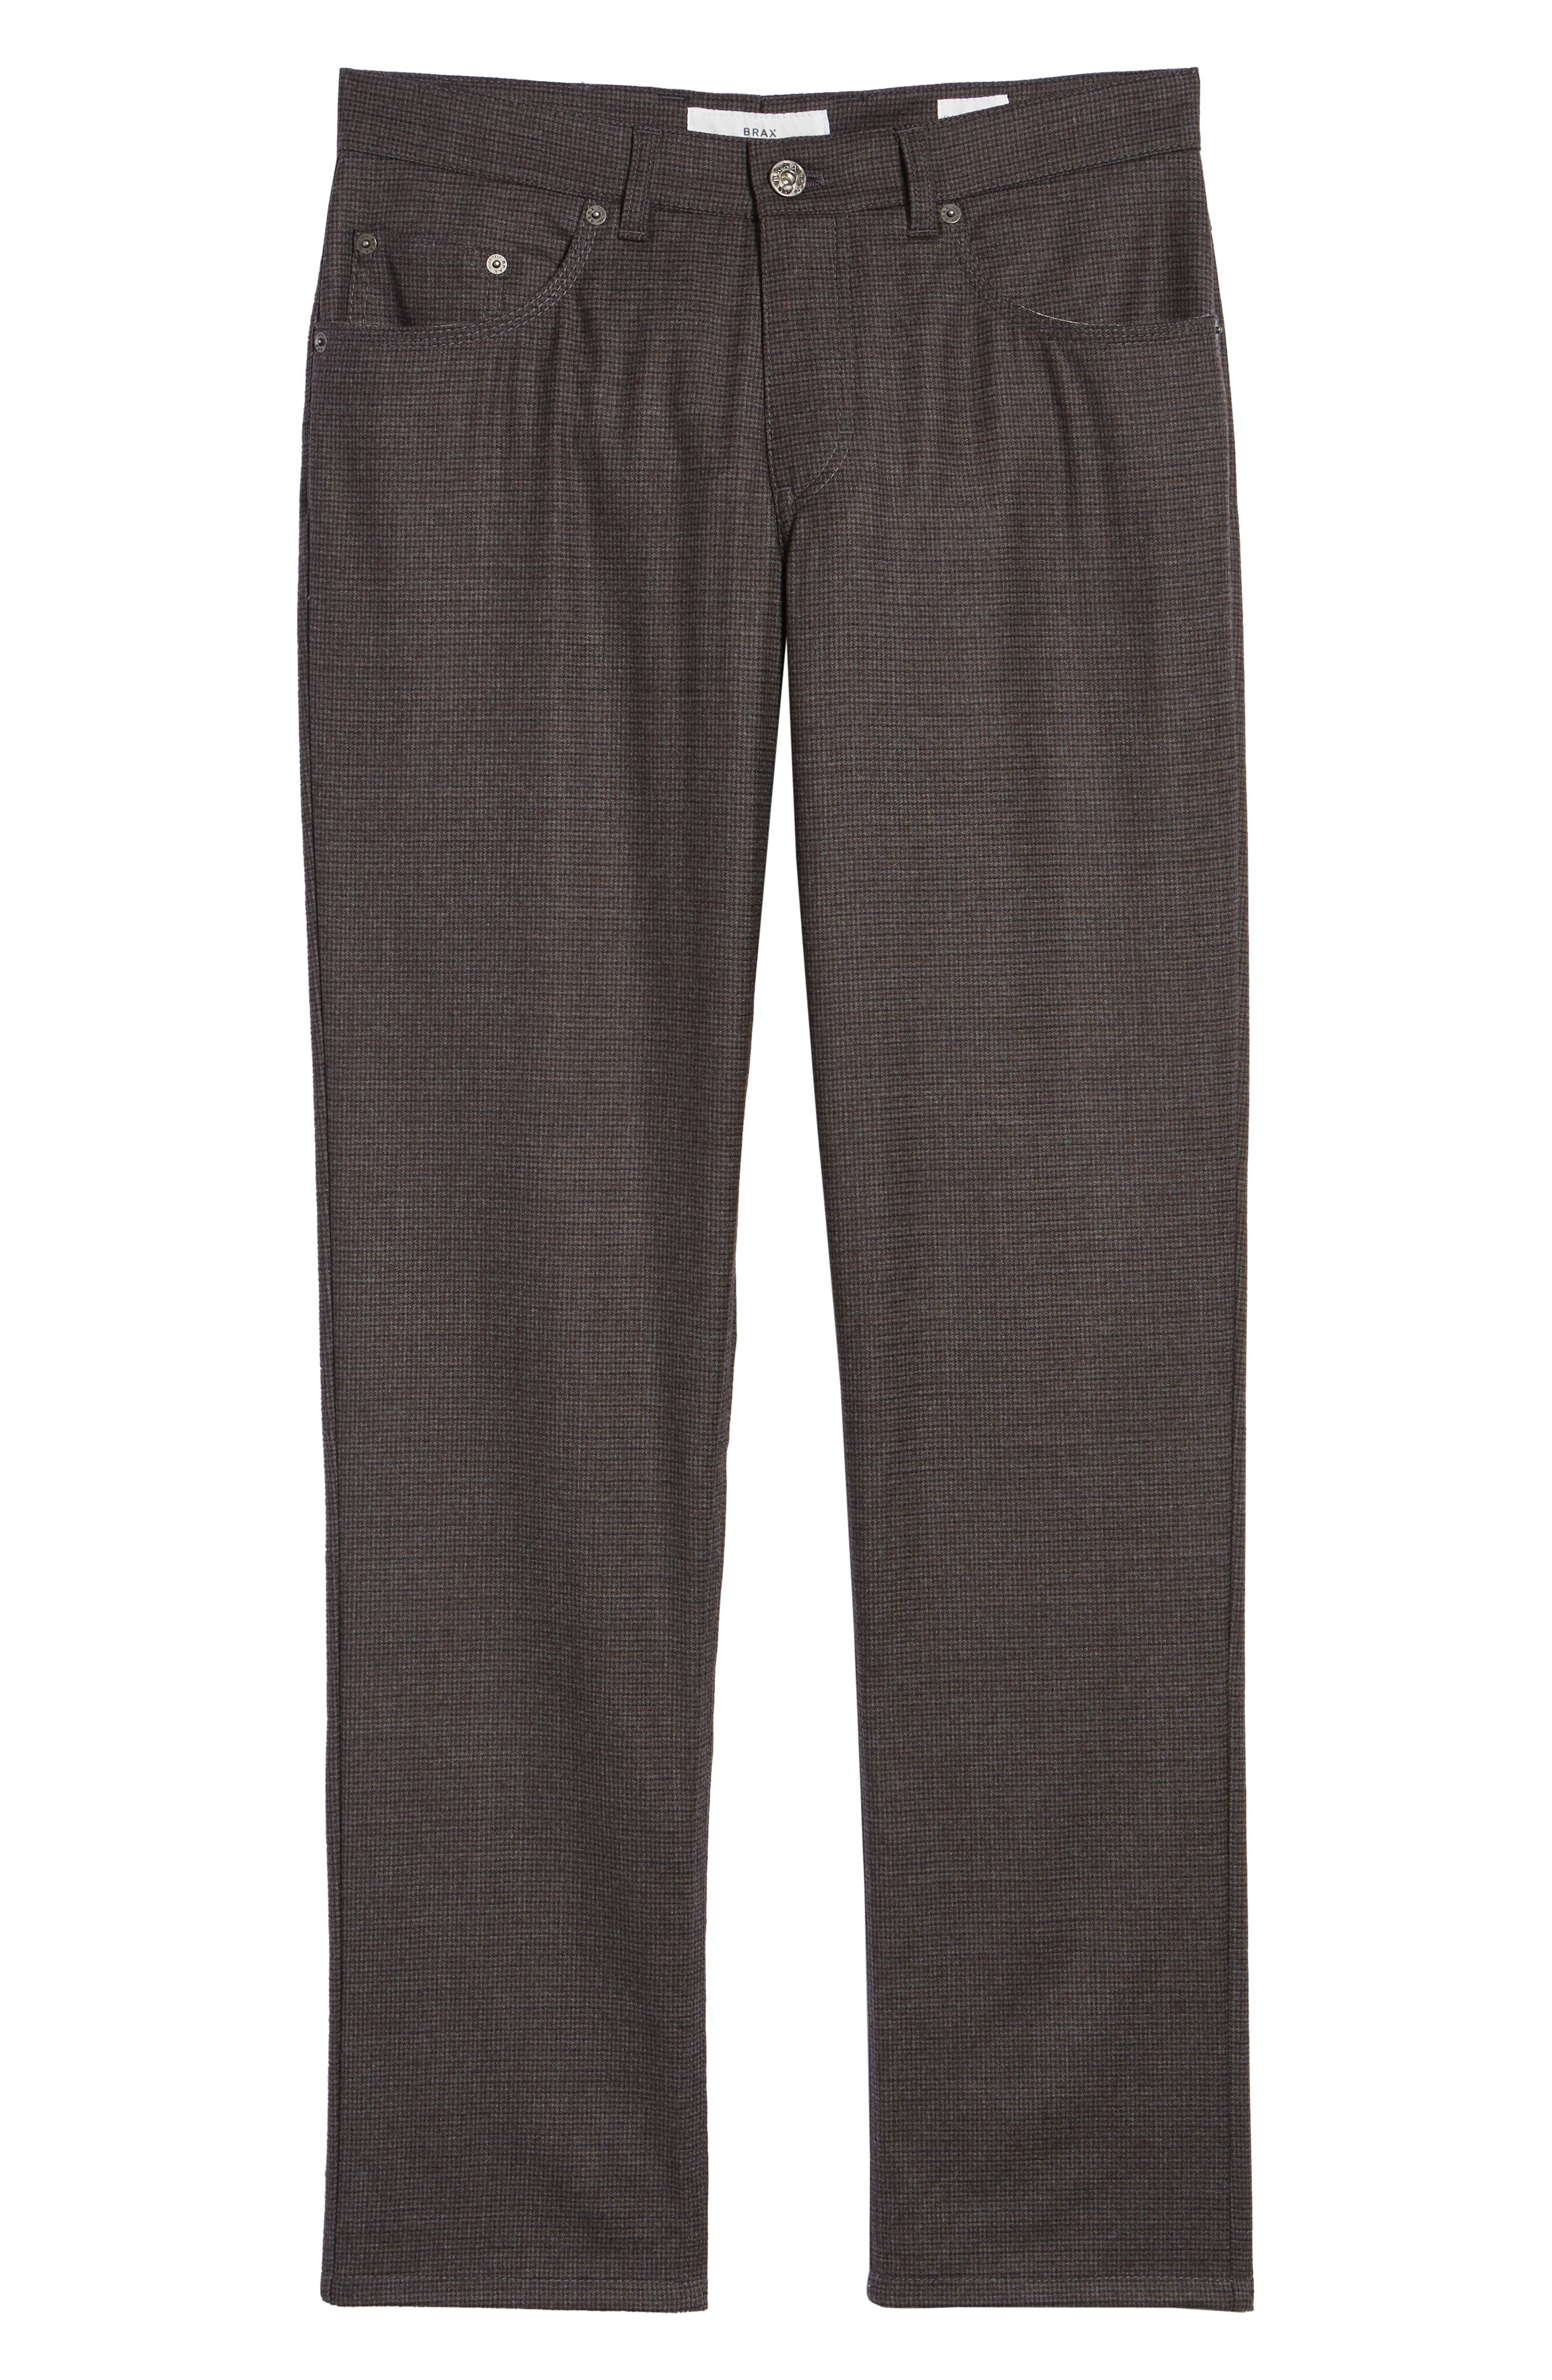 Cadiz Five Pocket Stretch Wool Trousers,                             Alternate thumbnail 6, color,                             ANTHRACITE